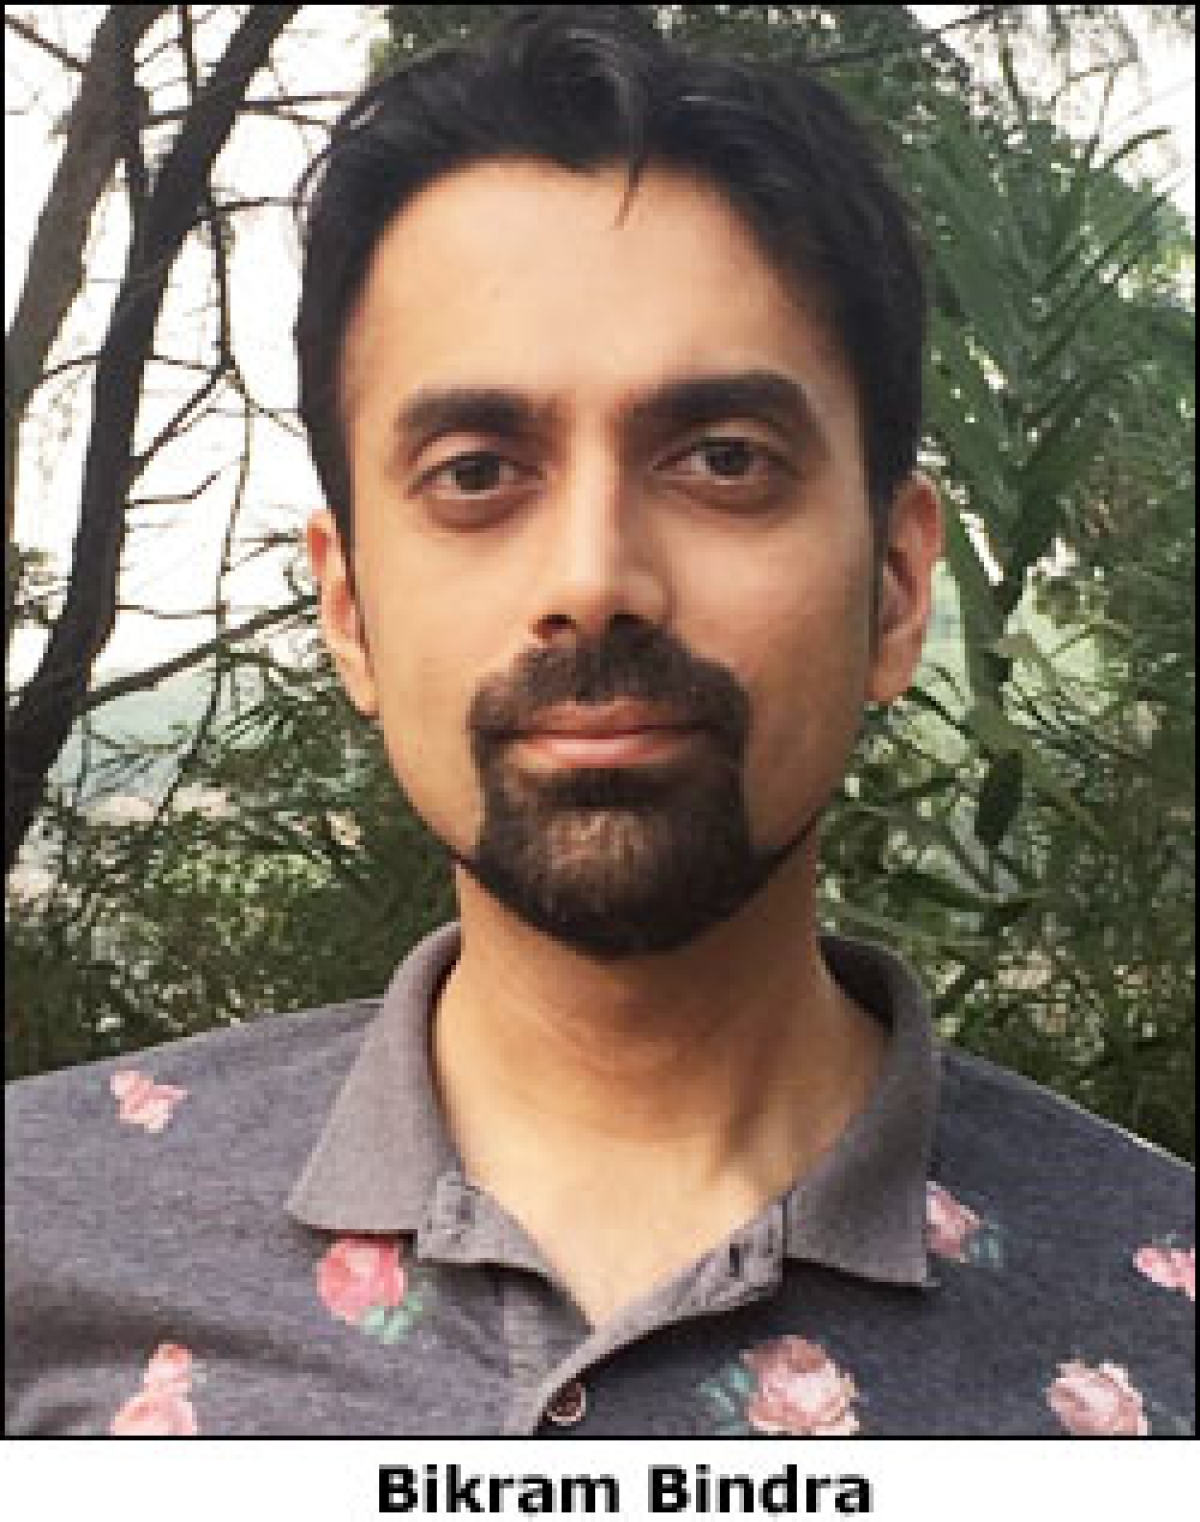 """""""E-comm brands need a mix of thematic and practical advertising"""": Vikrant Mudaliar, CMO, Yatra.com"""